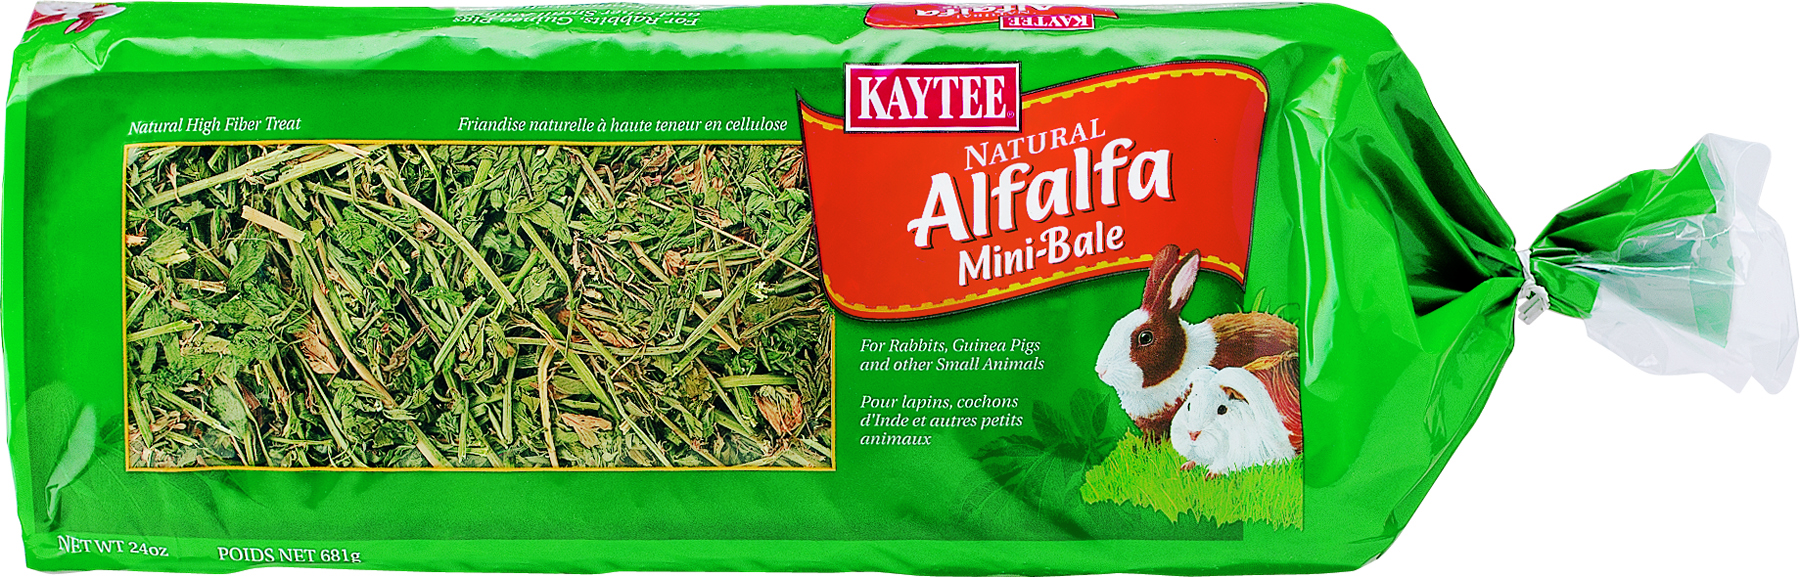 Alfalfa Minibale 24 Ounces